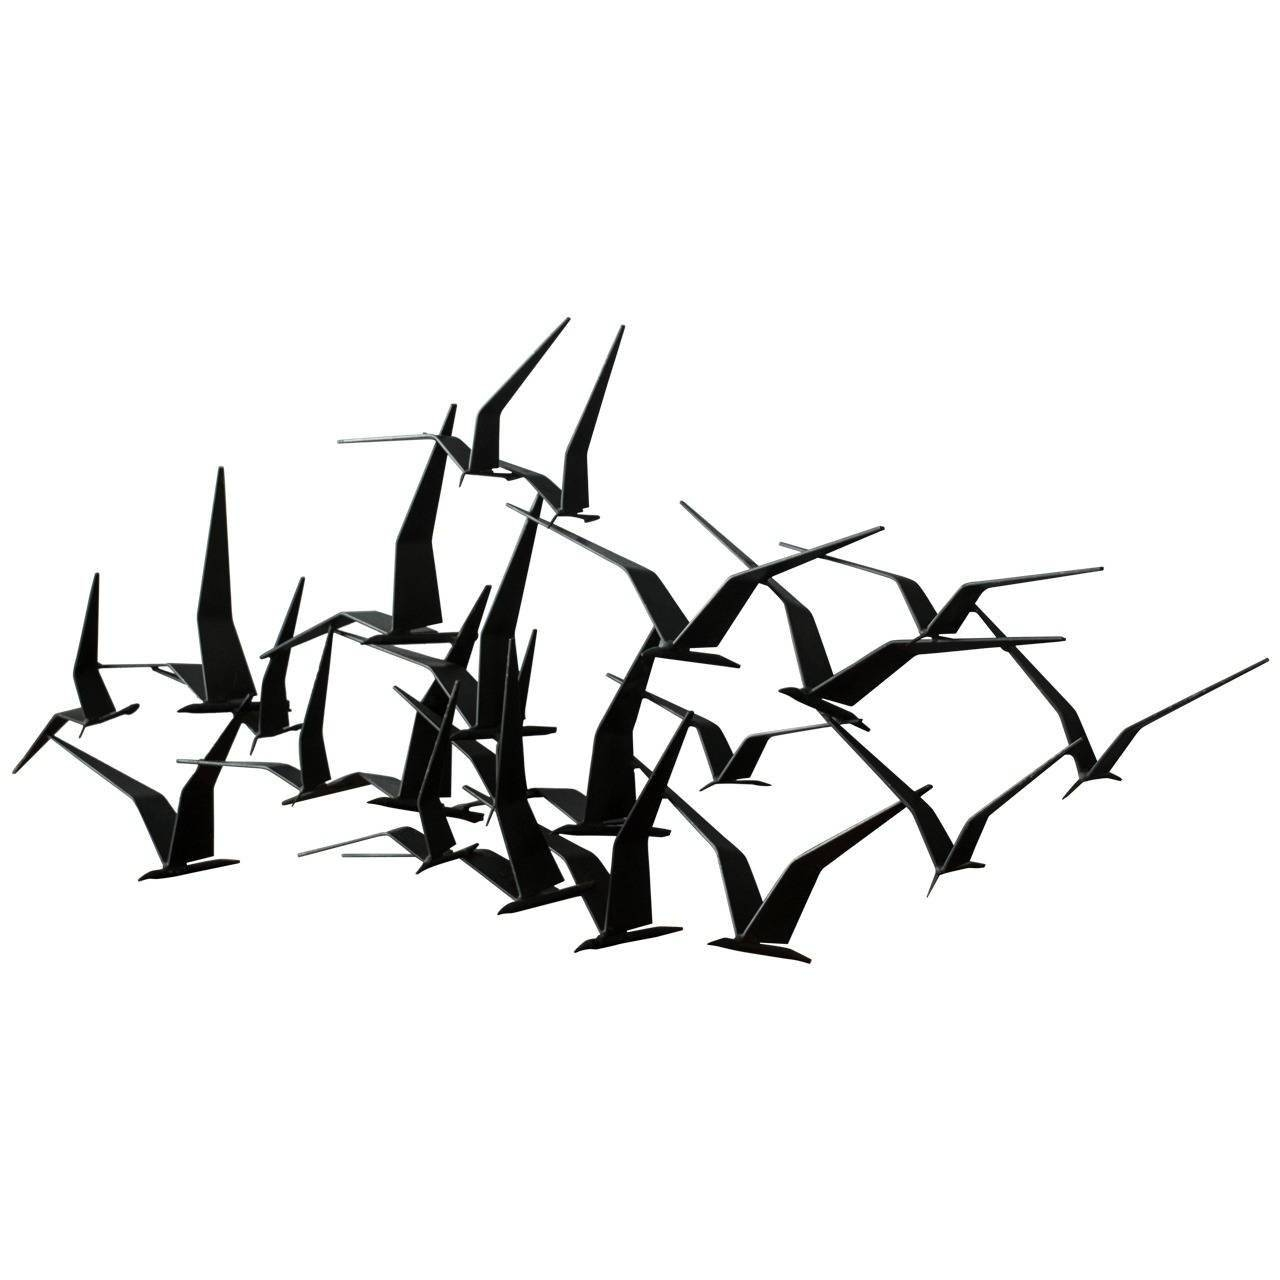 Adorable 80+ Metal Wall Art Birds Design Ideas Of 24, Branches Throughout Latest Metal Wall Art Flock Of Seagulls (View 3 of 30)